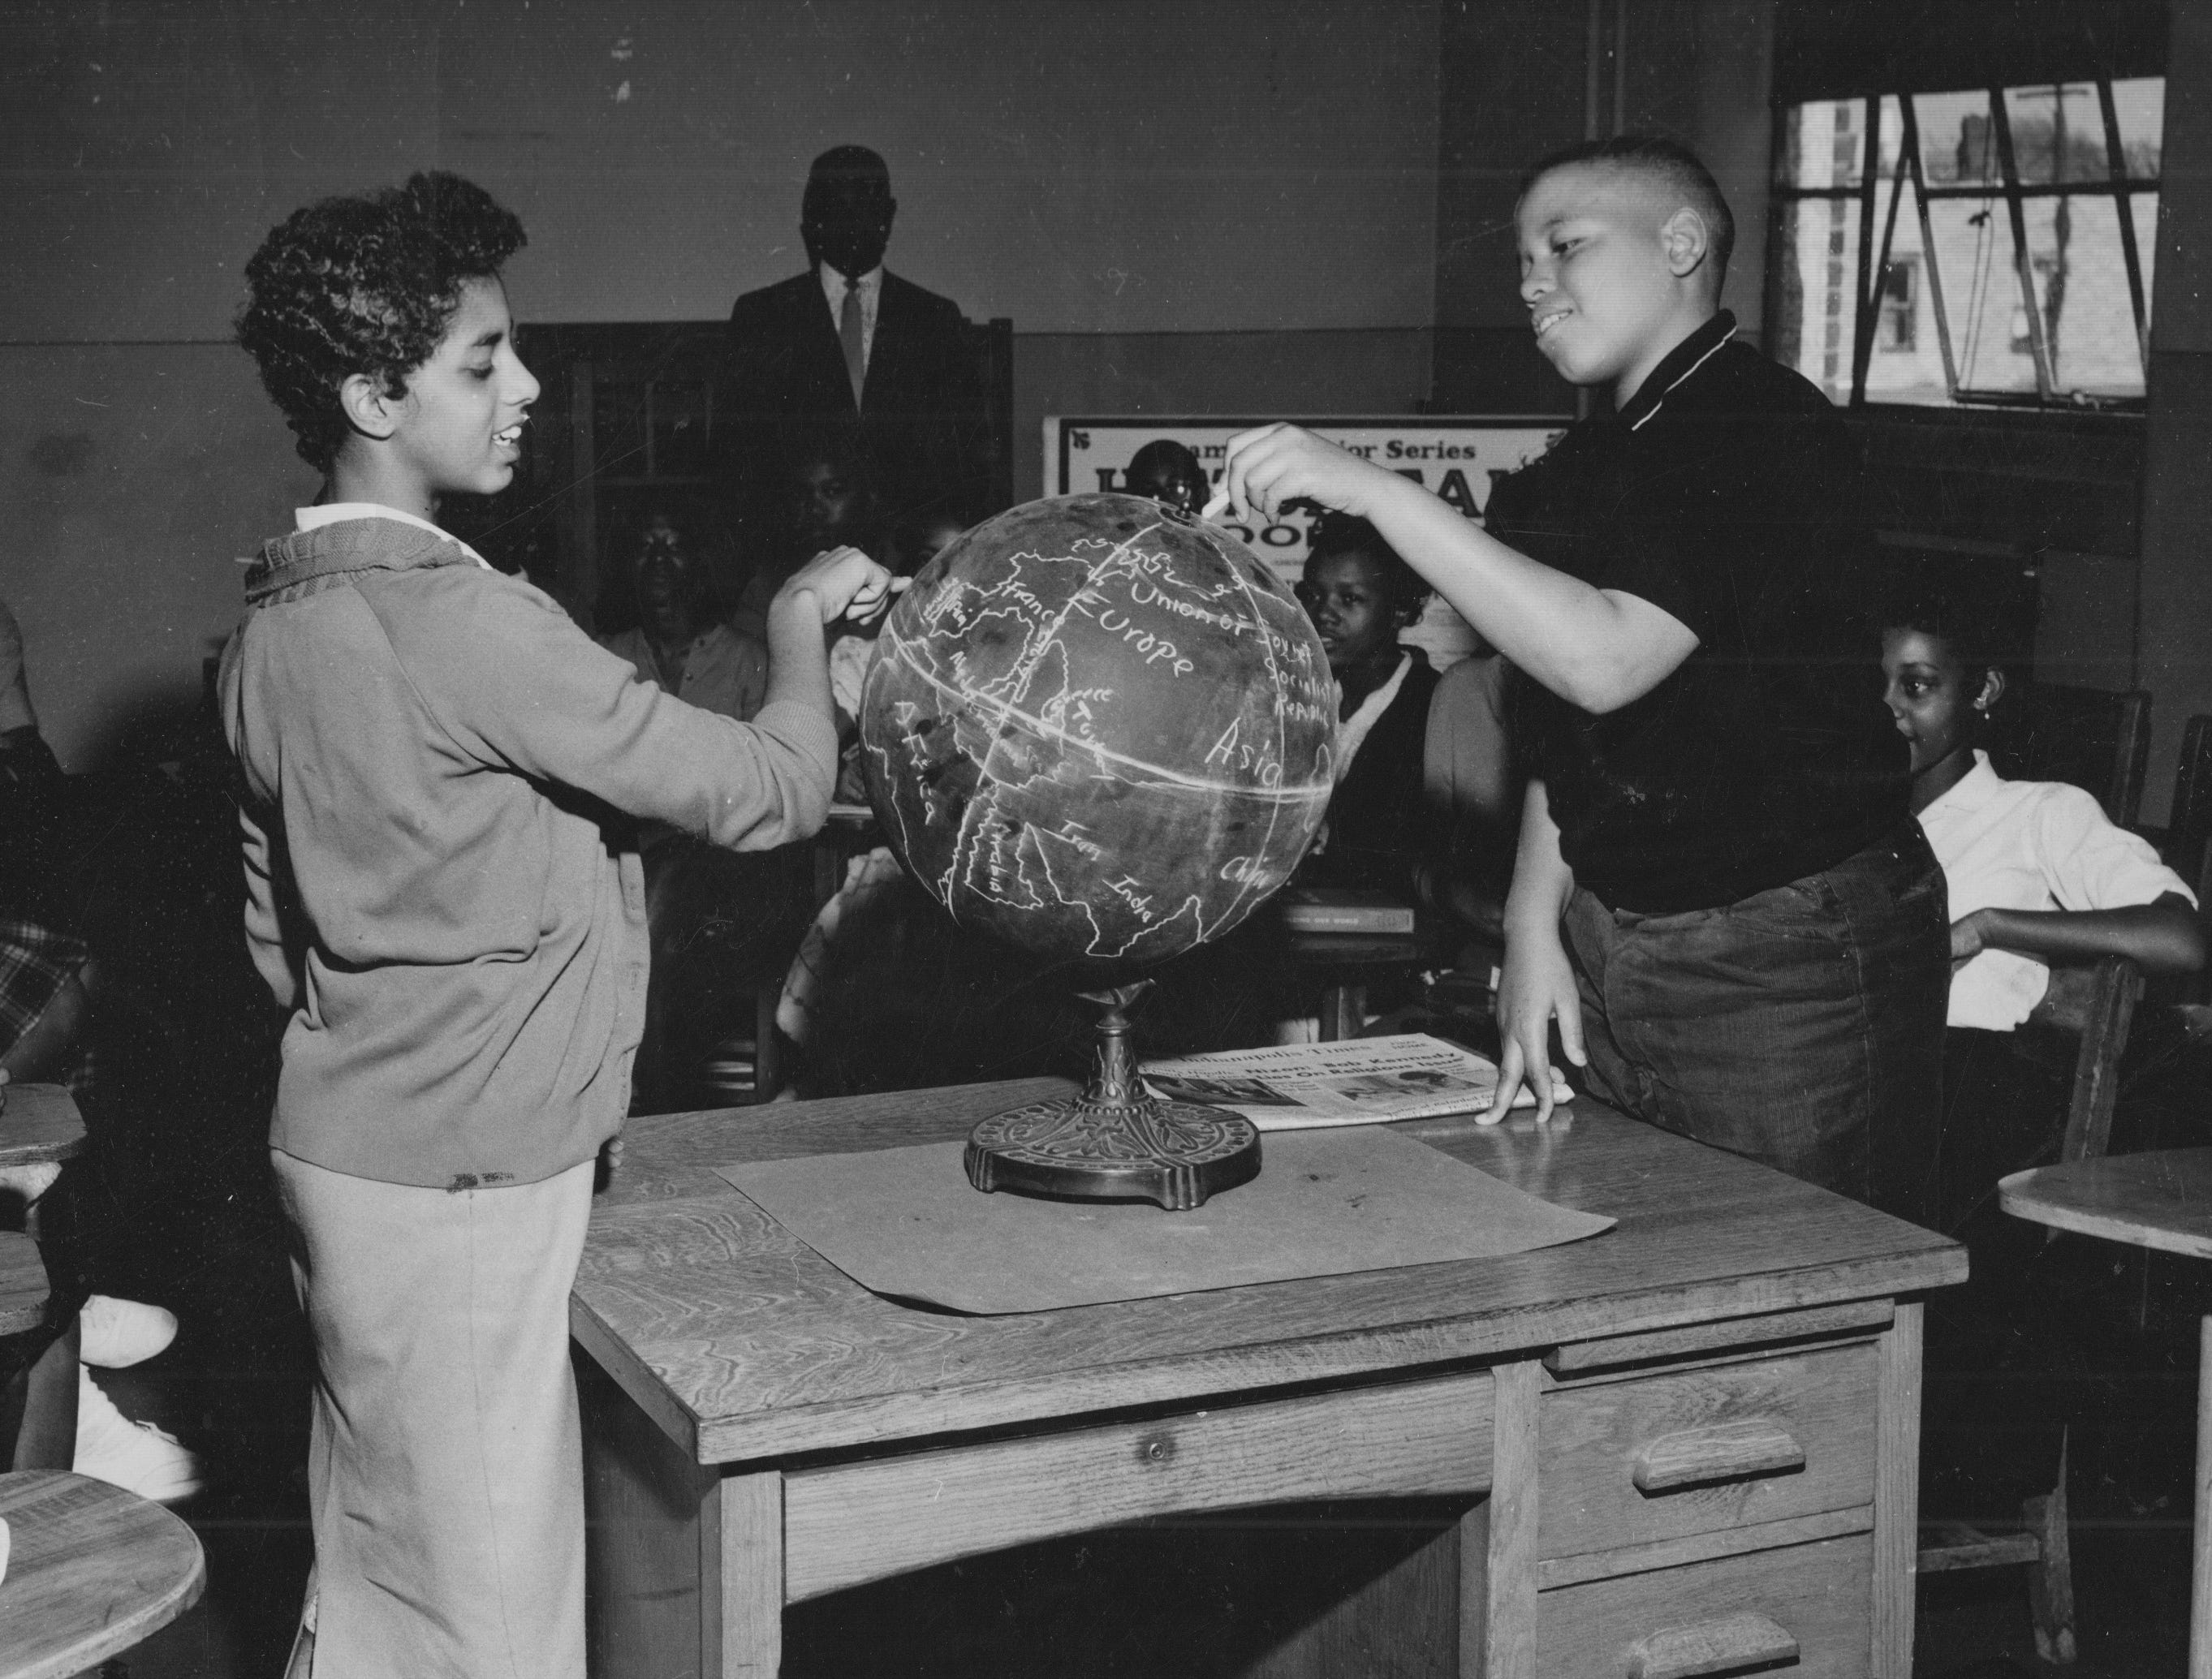 Students during a geography class at Crispus Attucks - date unknown.